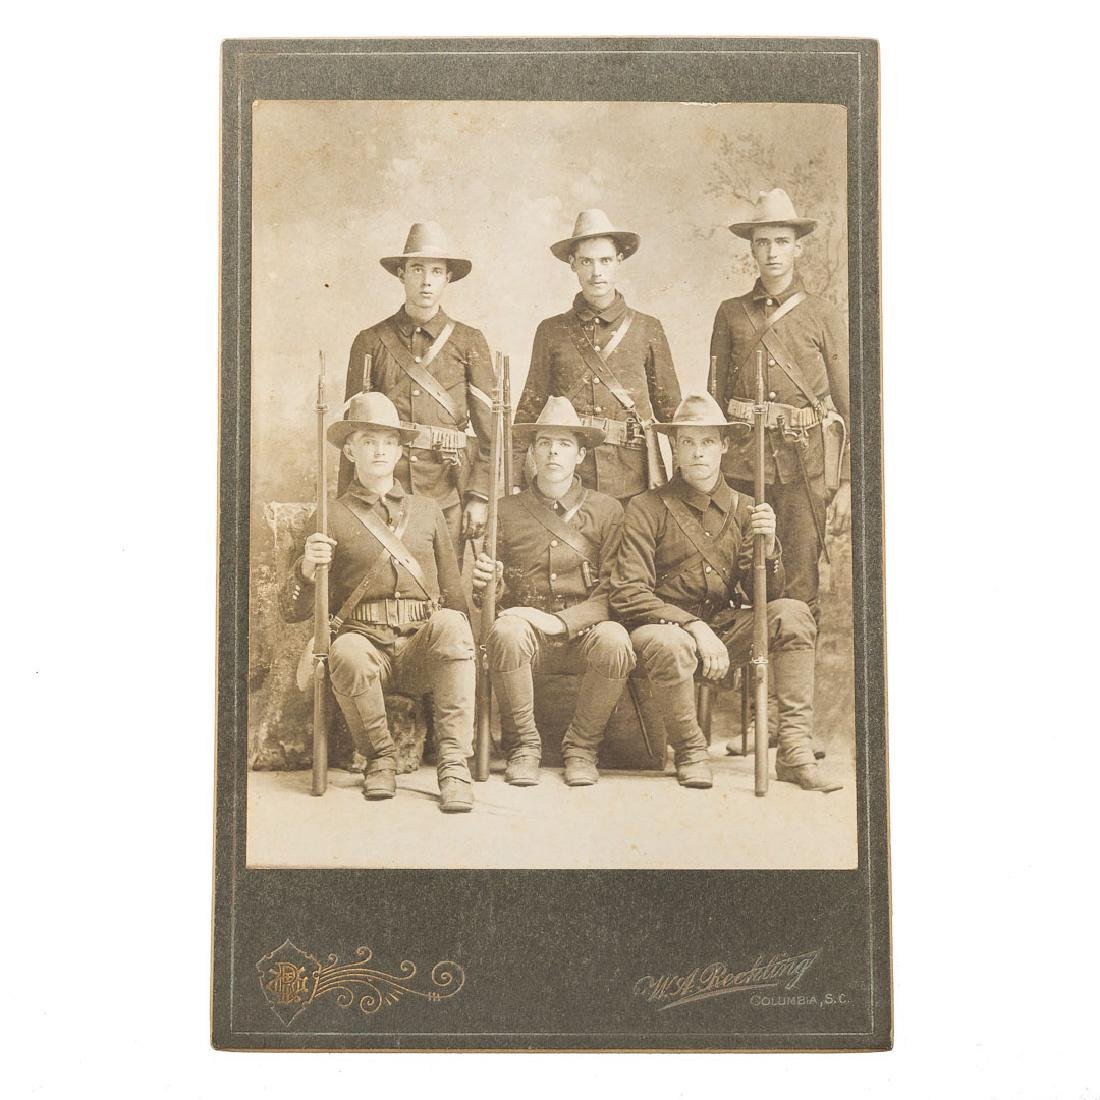 Spanish American War soldiers photograph